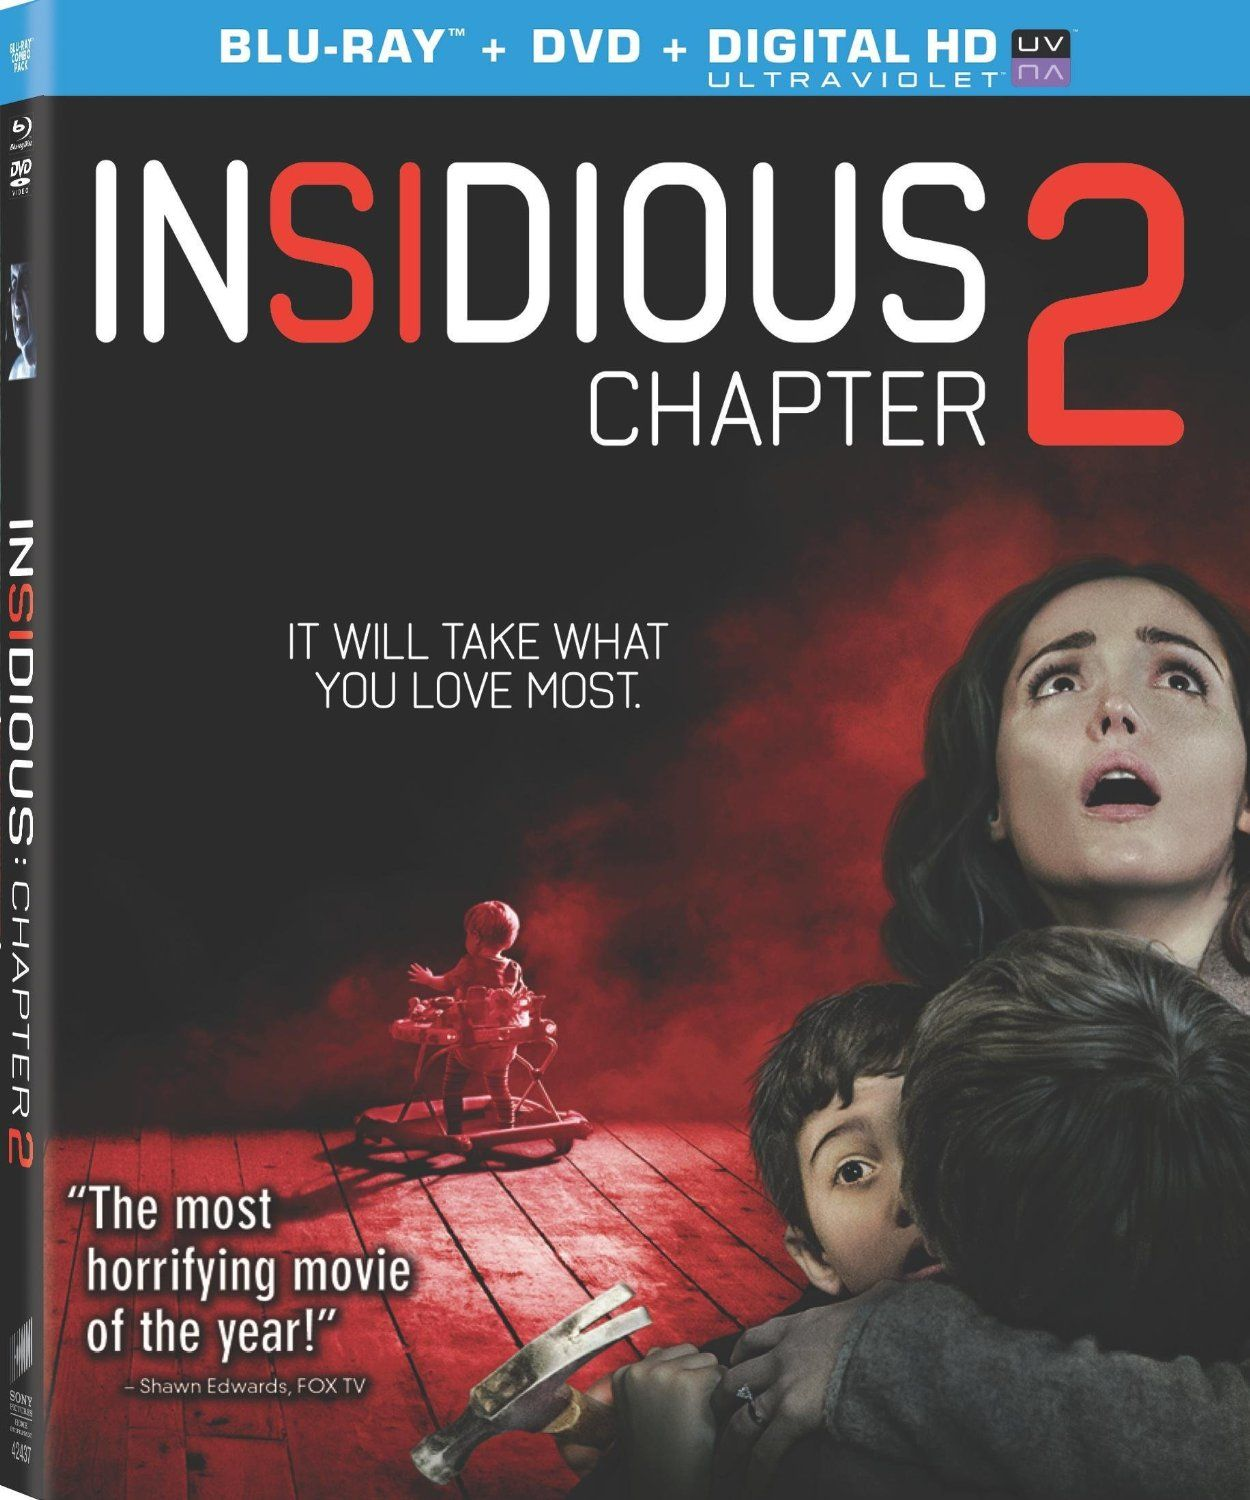 INSIDIOUS: CHAPTER 2 Blu-ray Review; INSIDIOUS: CHAPTER 2 ...